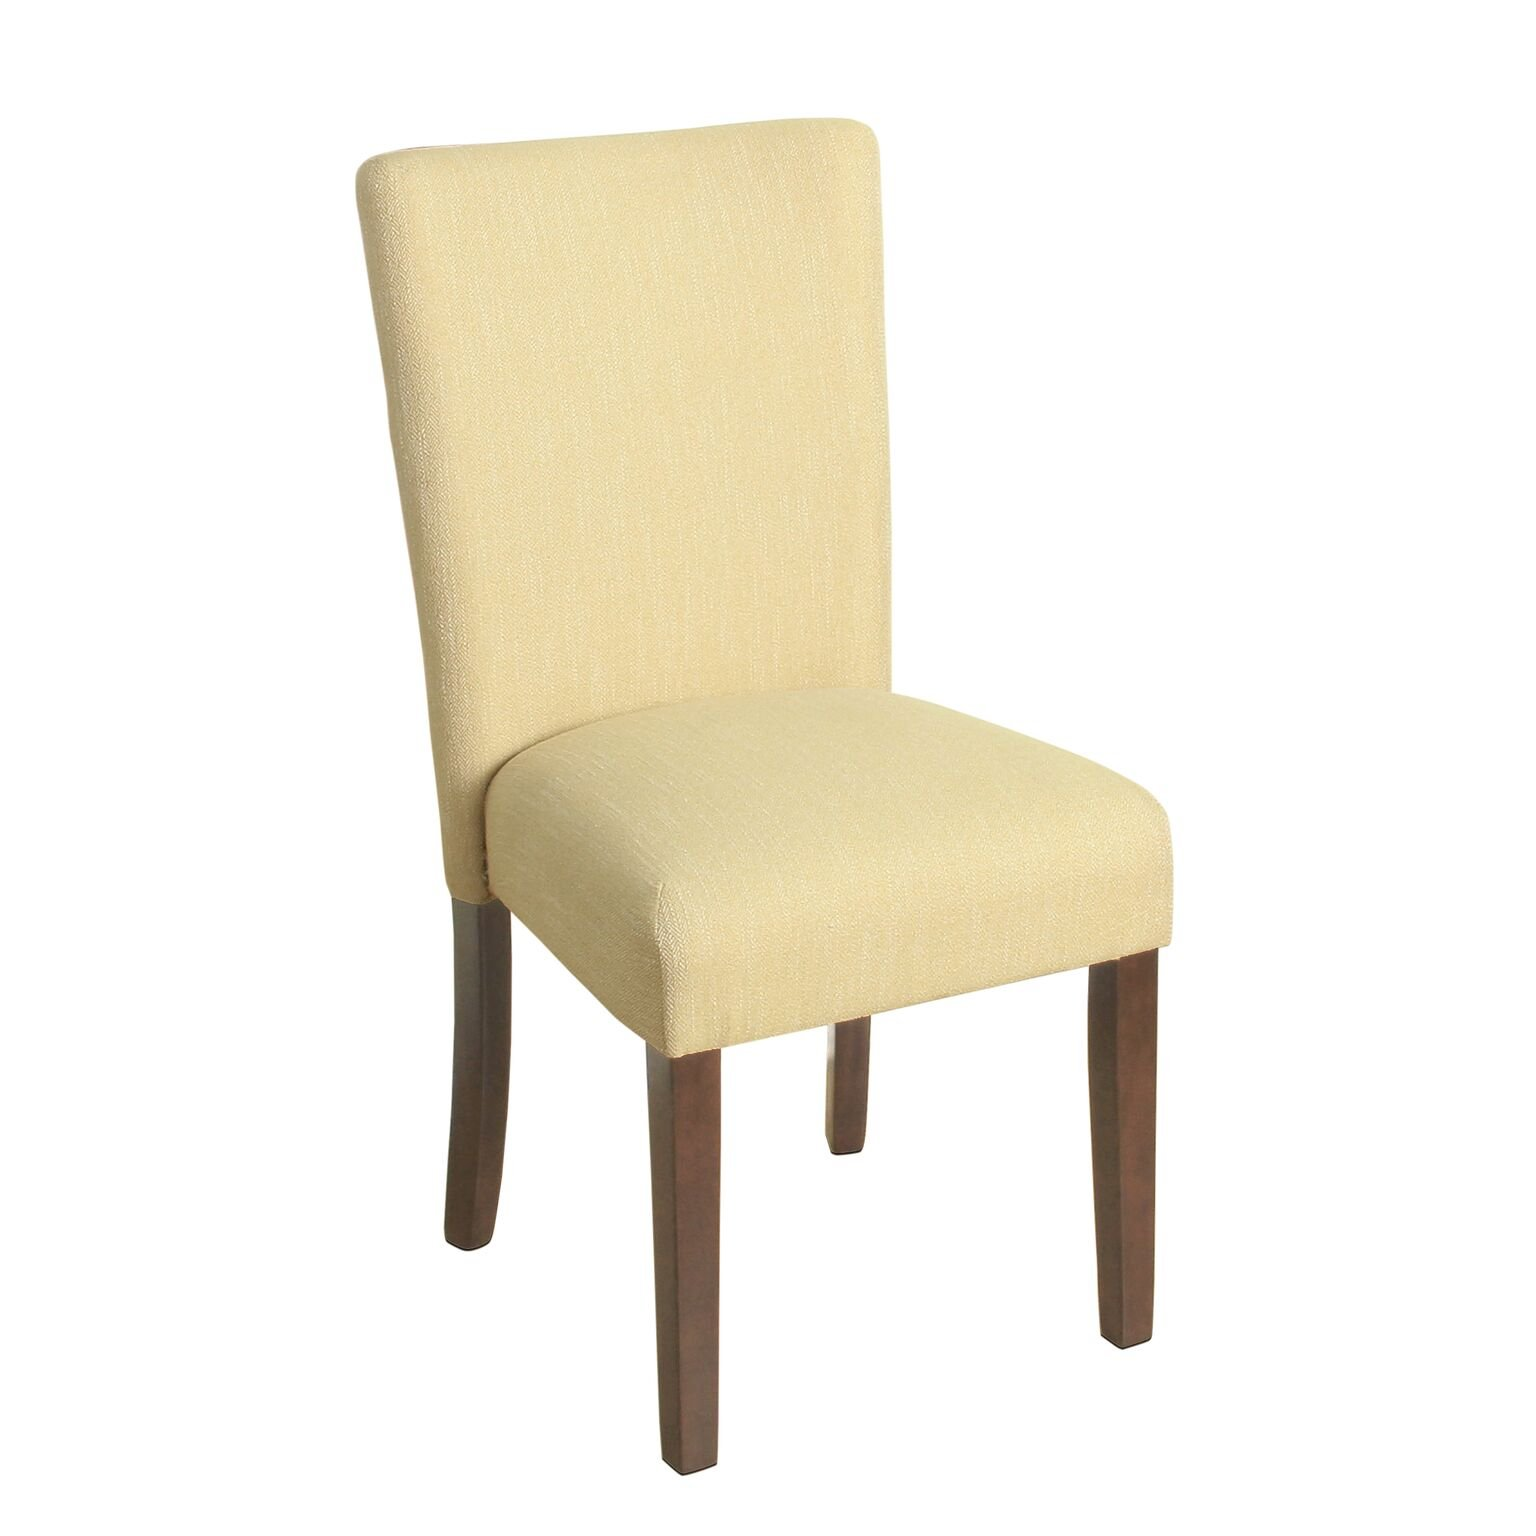 HomePop Parsons Classic Upholstered Accent Dining Chair, Single Pack, Yellow by HomePop